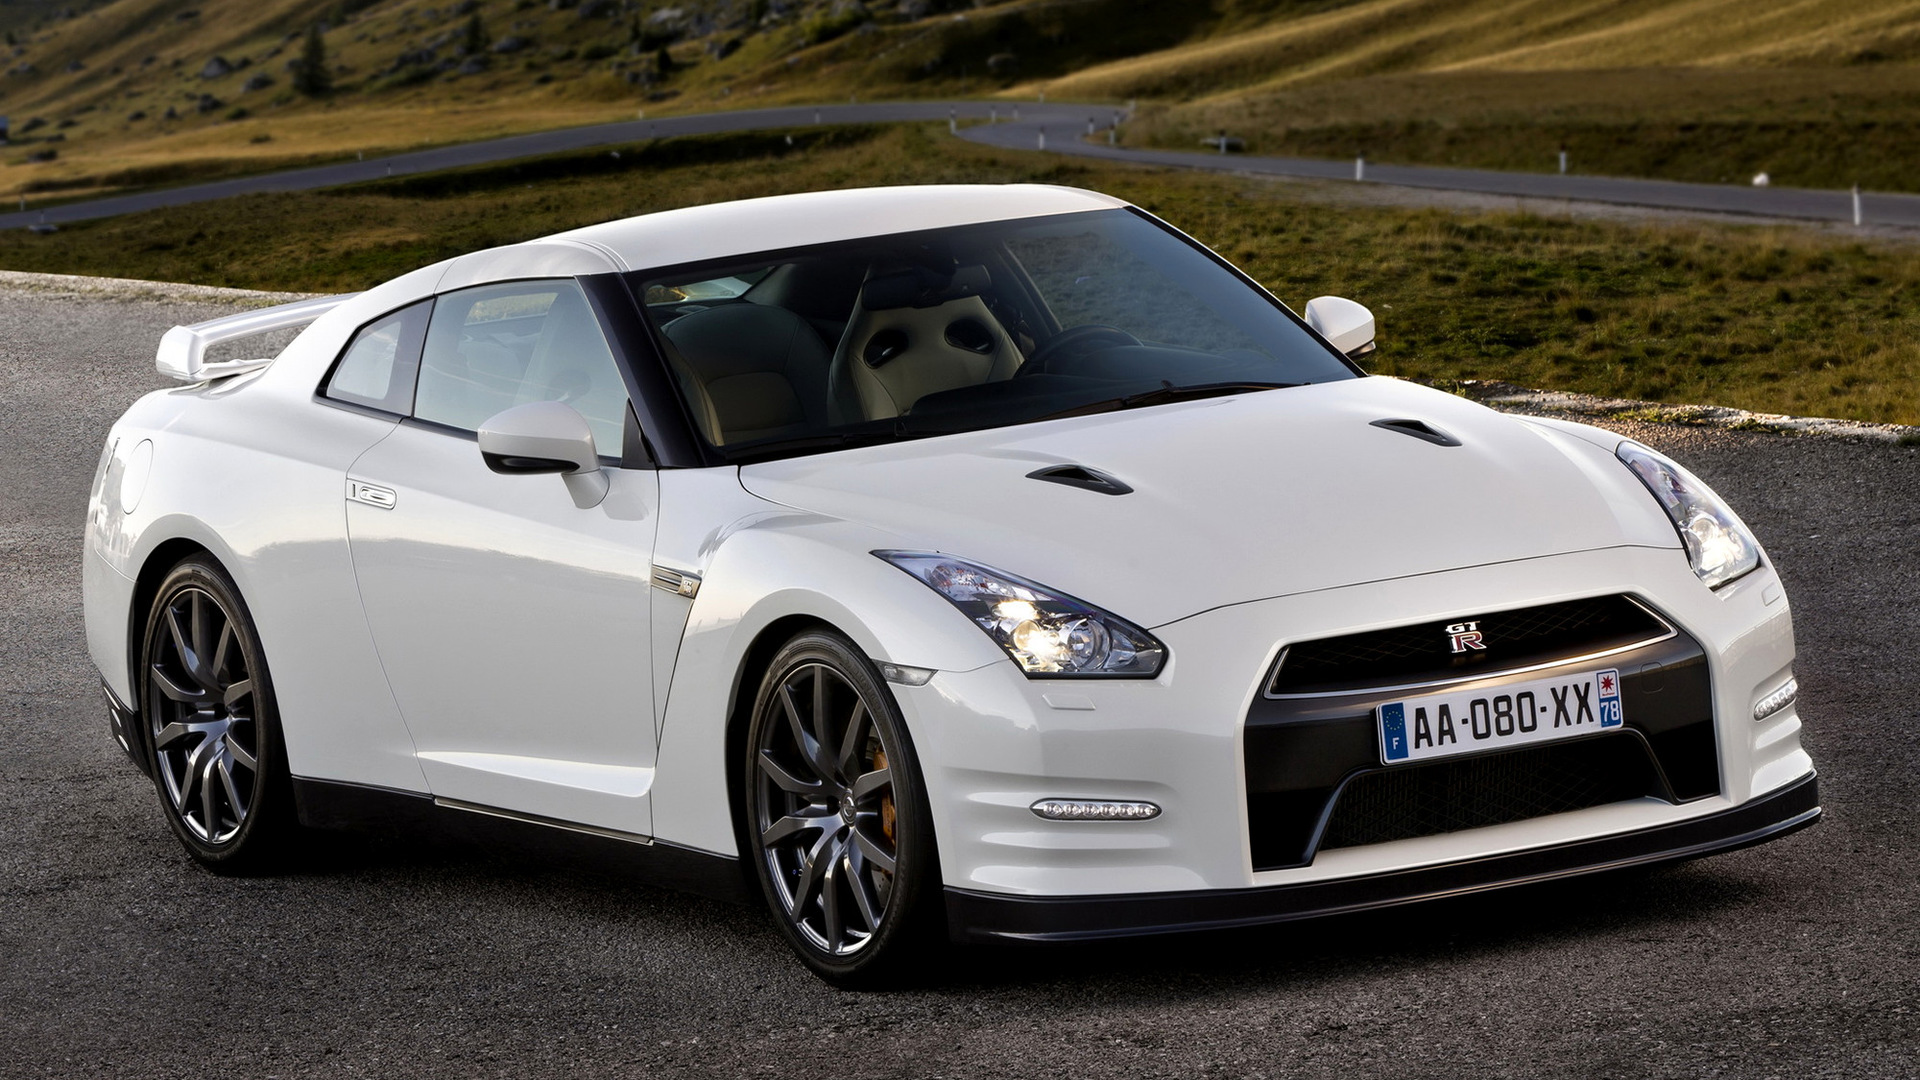 2010 Nissan Gt R Black Edition Wallpapers And Hd Images